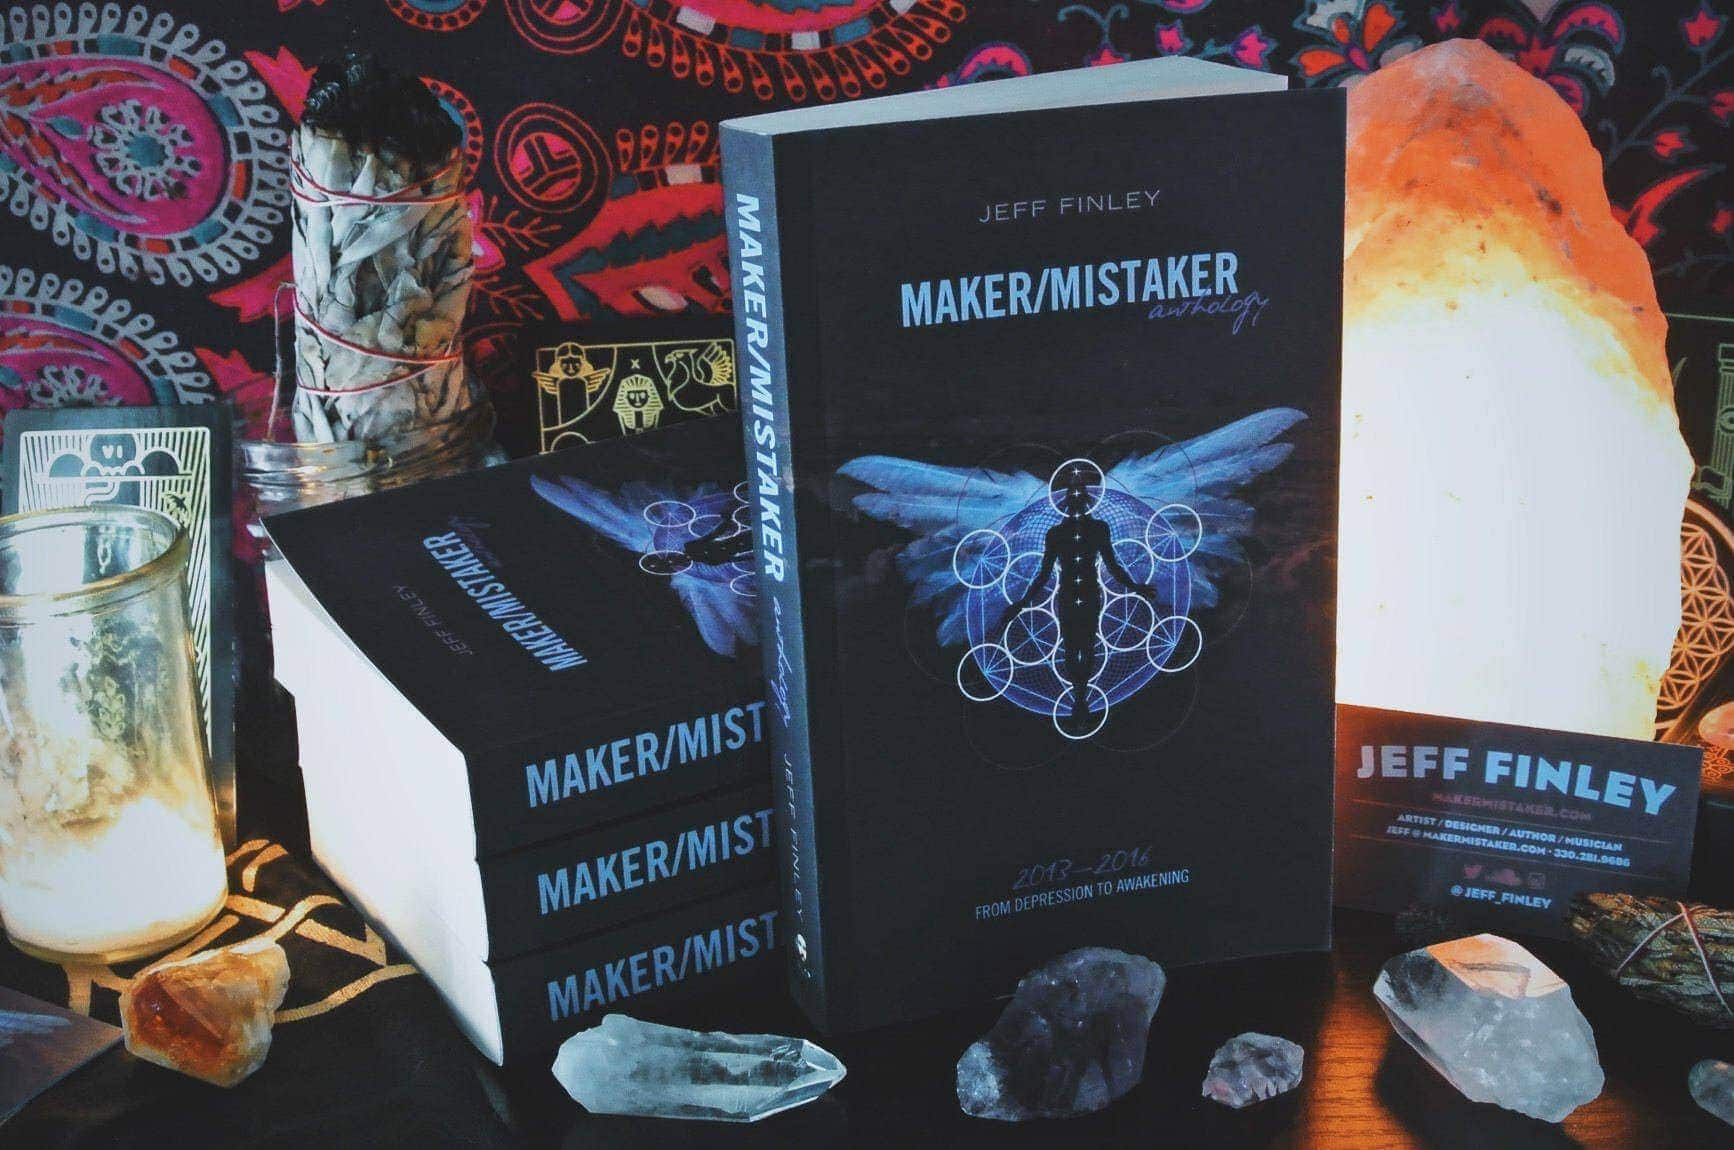 Maker/Mistaker Book - Real Talk on Our Struggle as Creators & Makers